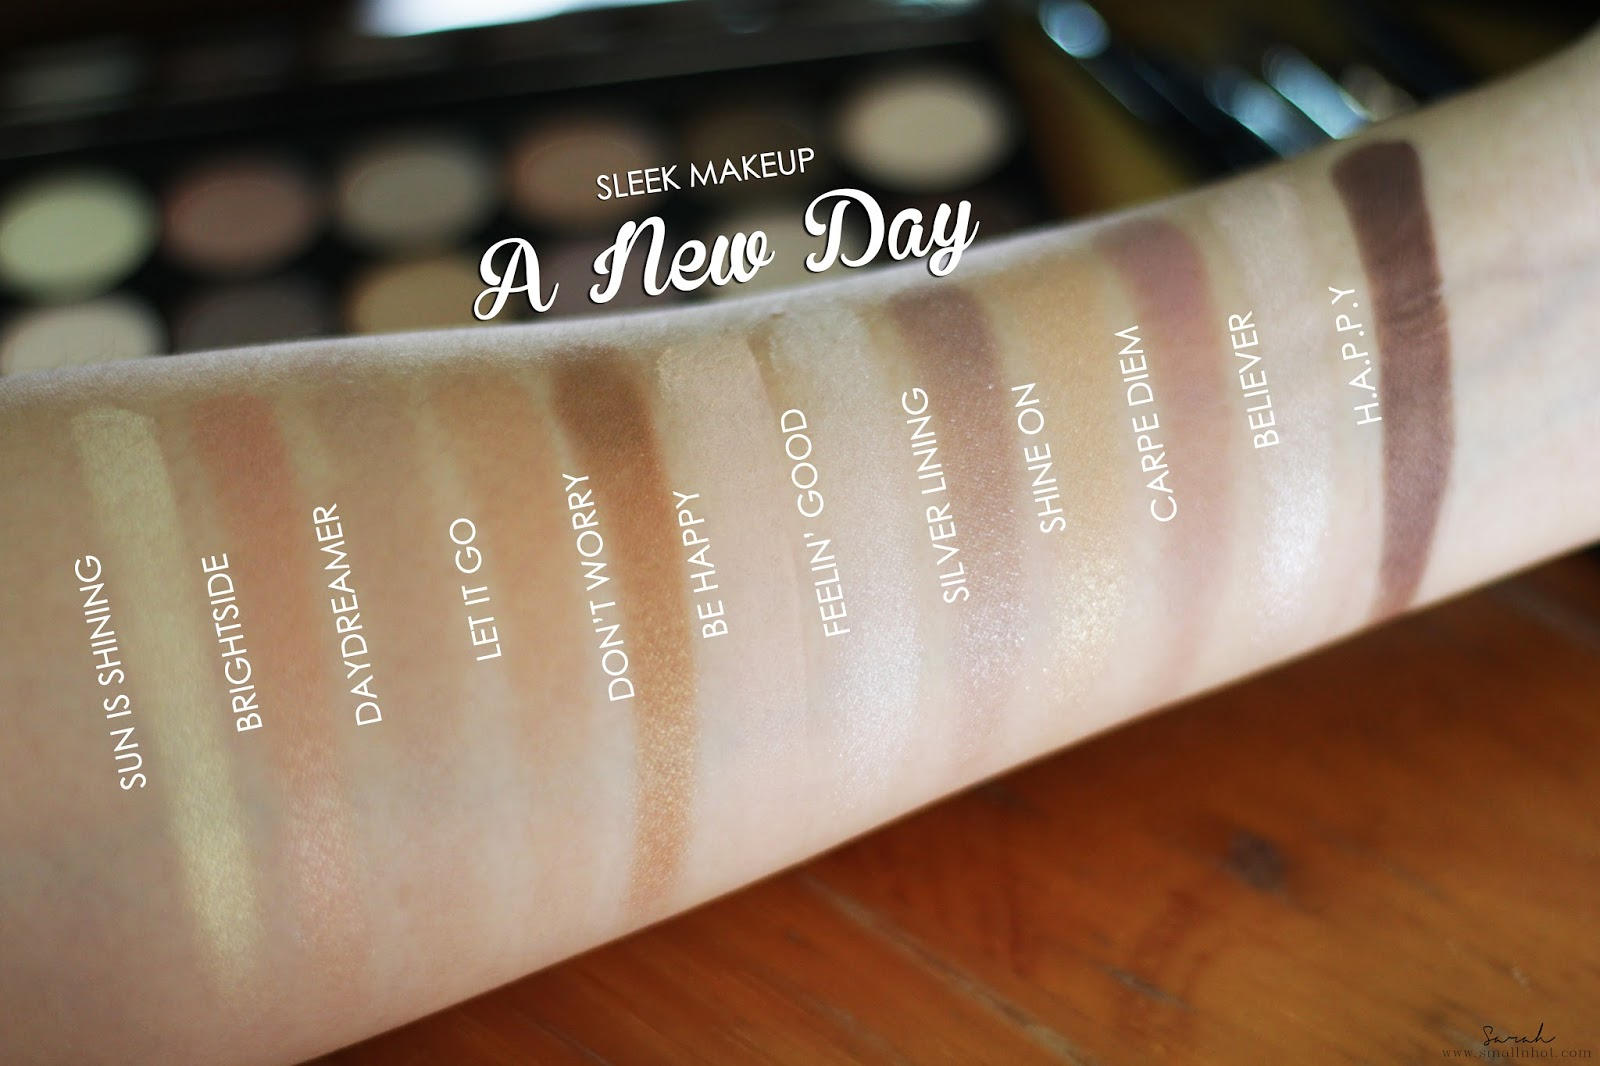 i-Divine Palette - A New Day by sleek #5